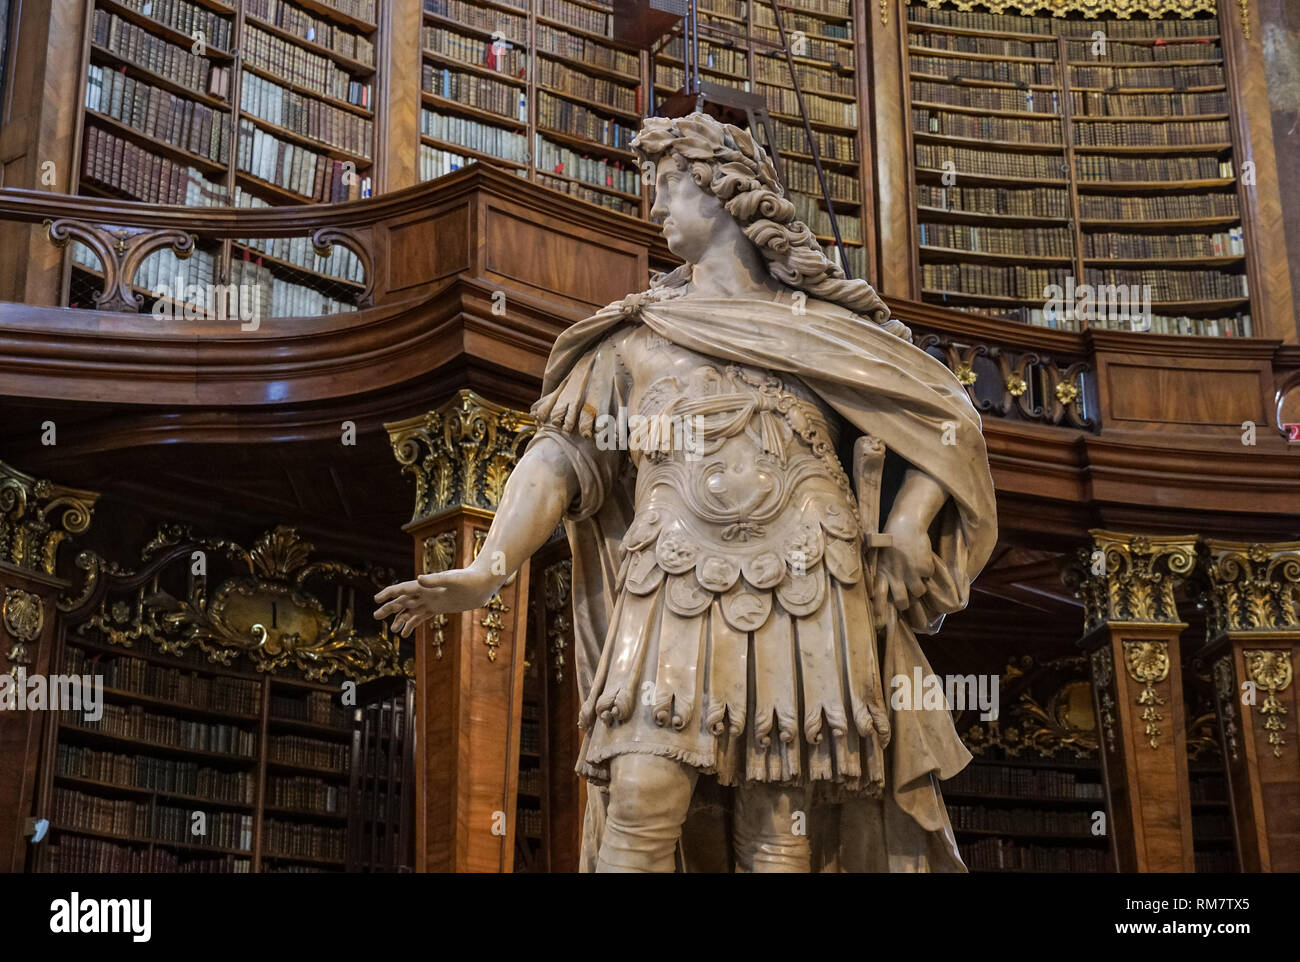 Austrian National Library in Vienna, Austria - Stock Image